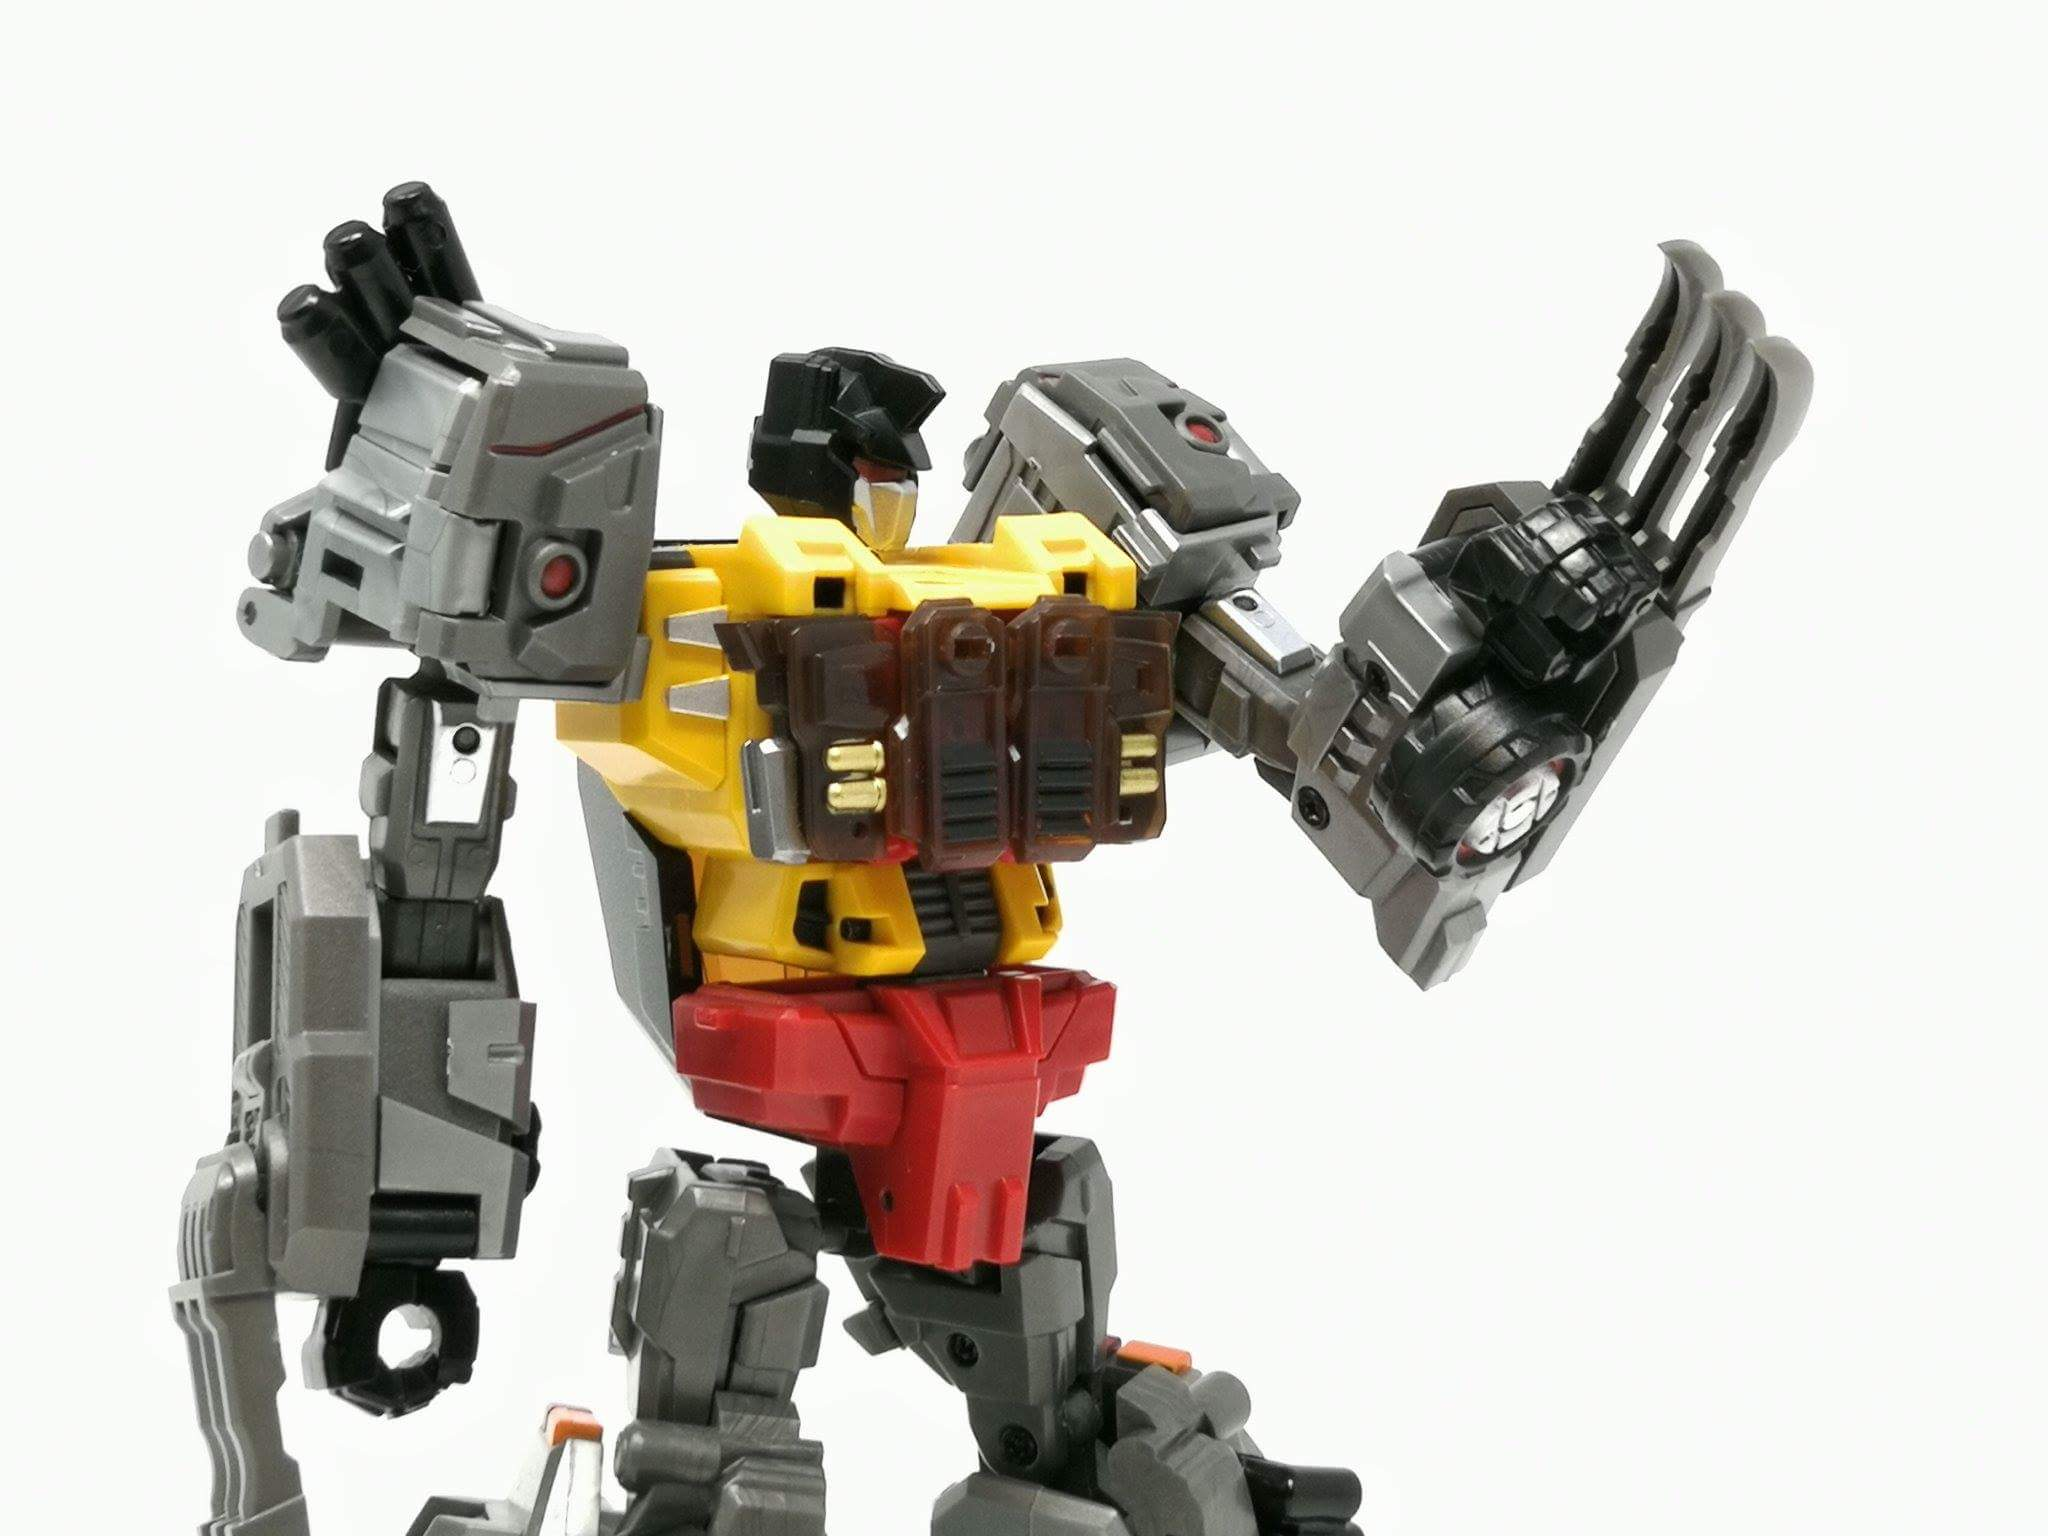 [FansProject] Produit Tiers - Jouets LER (Lost Exo Realm) - aka Dinobots - Page 3 E166QryL_o